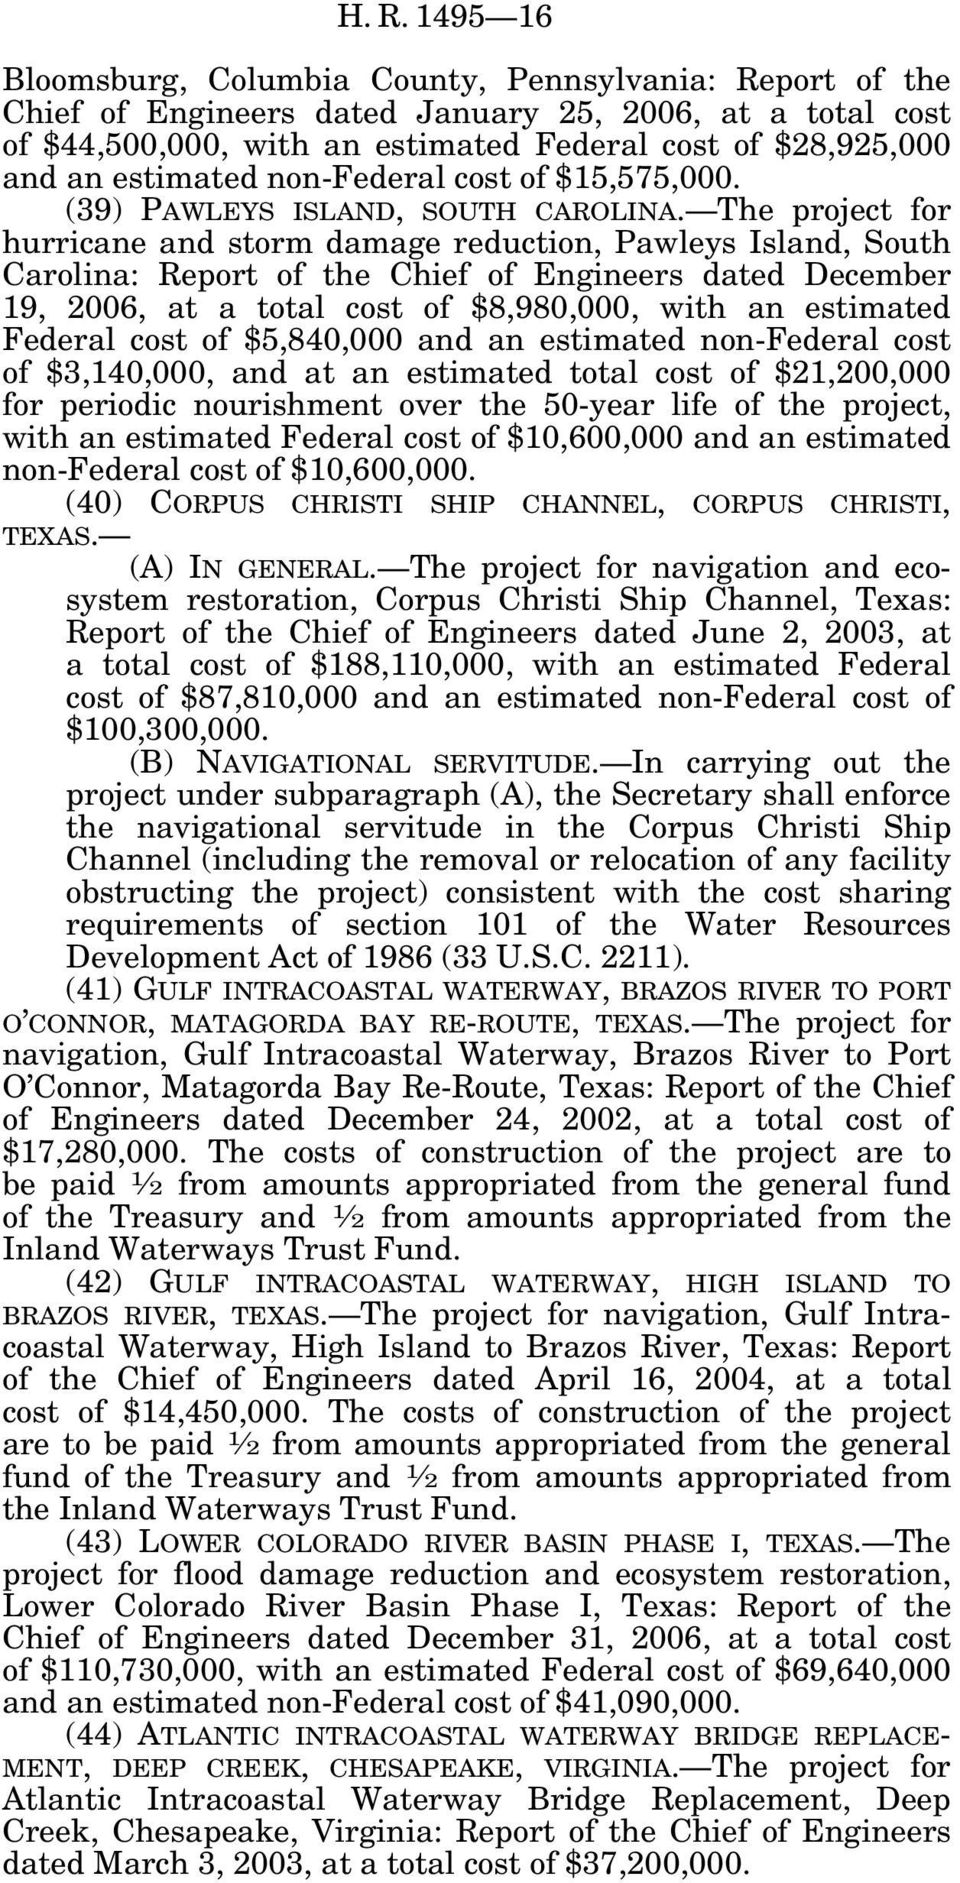 The project for hurricane and storm damage reduction, Pawleys Island, South Carolina: Report of the Chief of Engineers dated December 19, 2006, at a total cost of $8,980,000, with an estimated